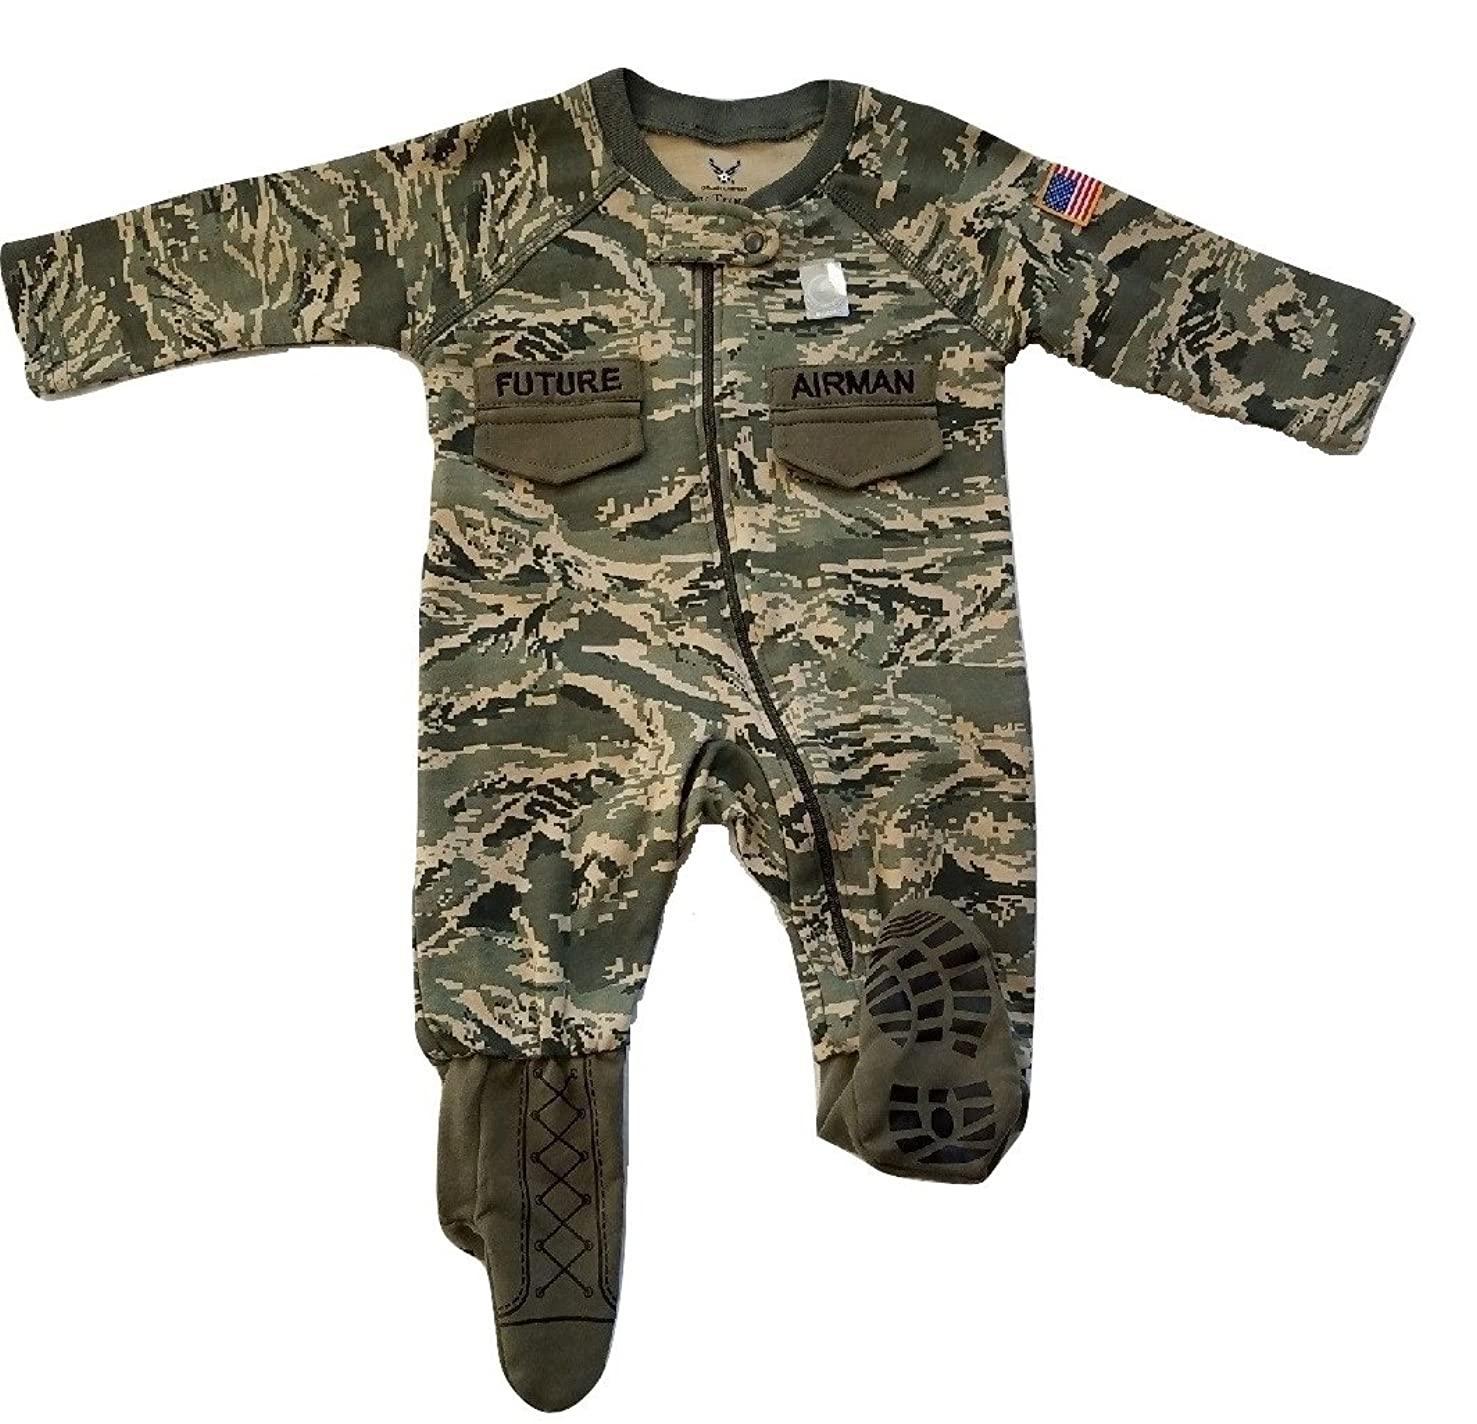 TC U.S. Air Force Baby Boys ABU Camo Crawler with Recruit Boots